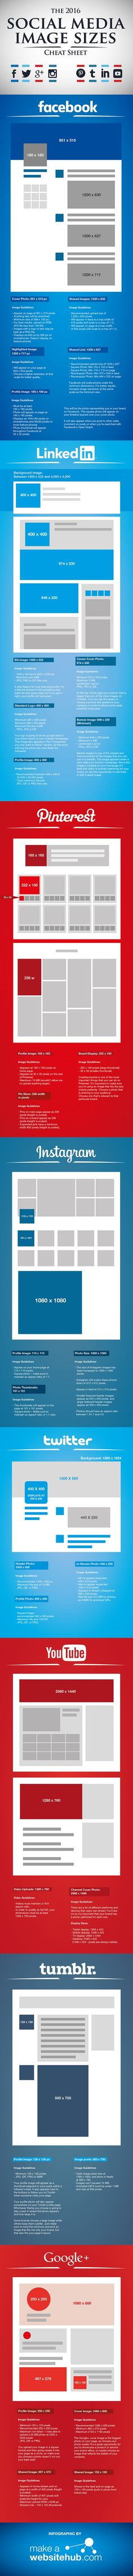 A cheat sheet of the sizes and dimensions for photos and images on Facebook…